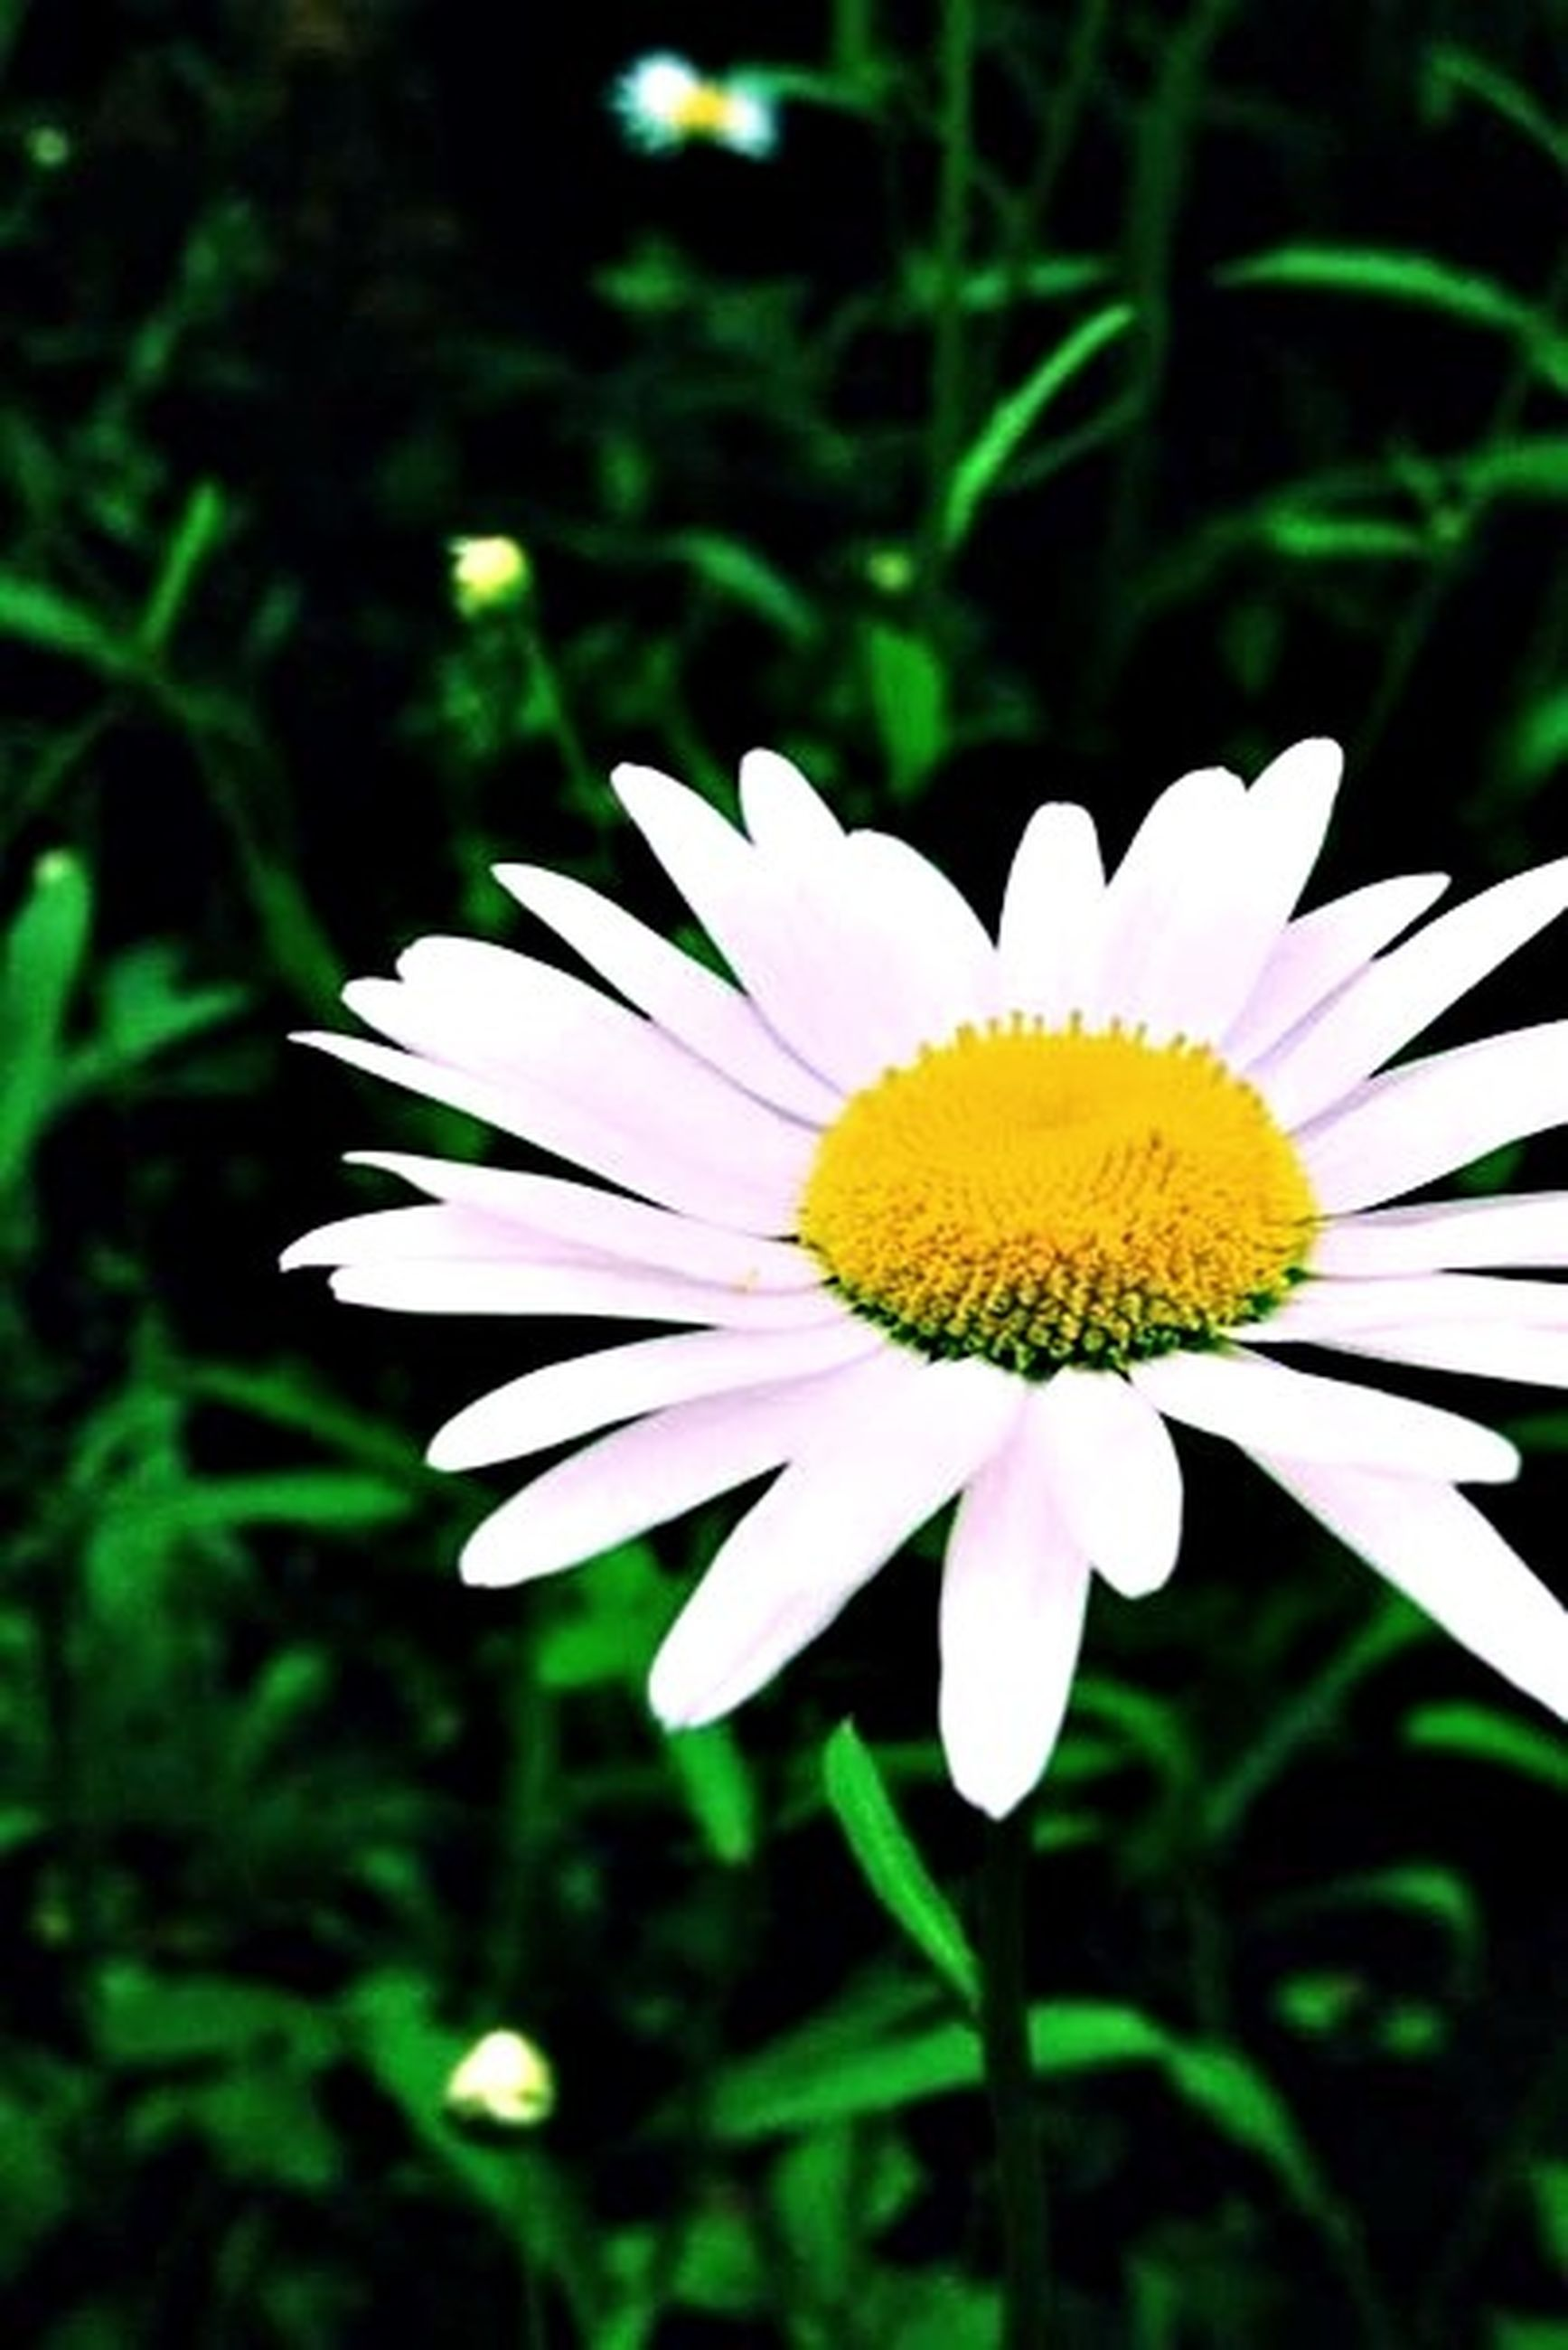 flower, petal, freshness, flower head, fragility, growth, beauty in nature, daisy, white color, pollen, blooming, yellow, close-up, single flower, nature, focus on foreground, plant, in bloom, outdoors, day